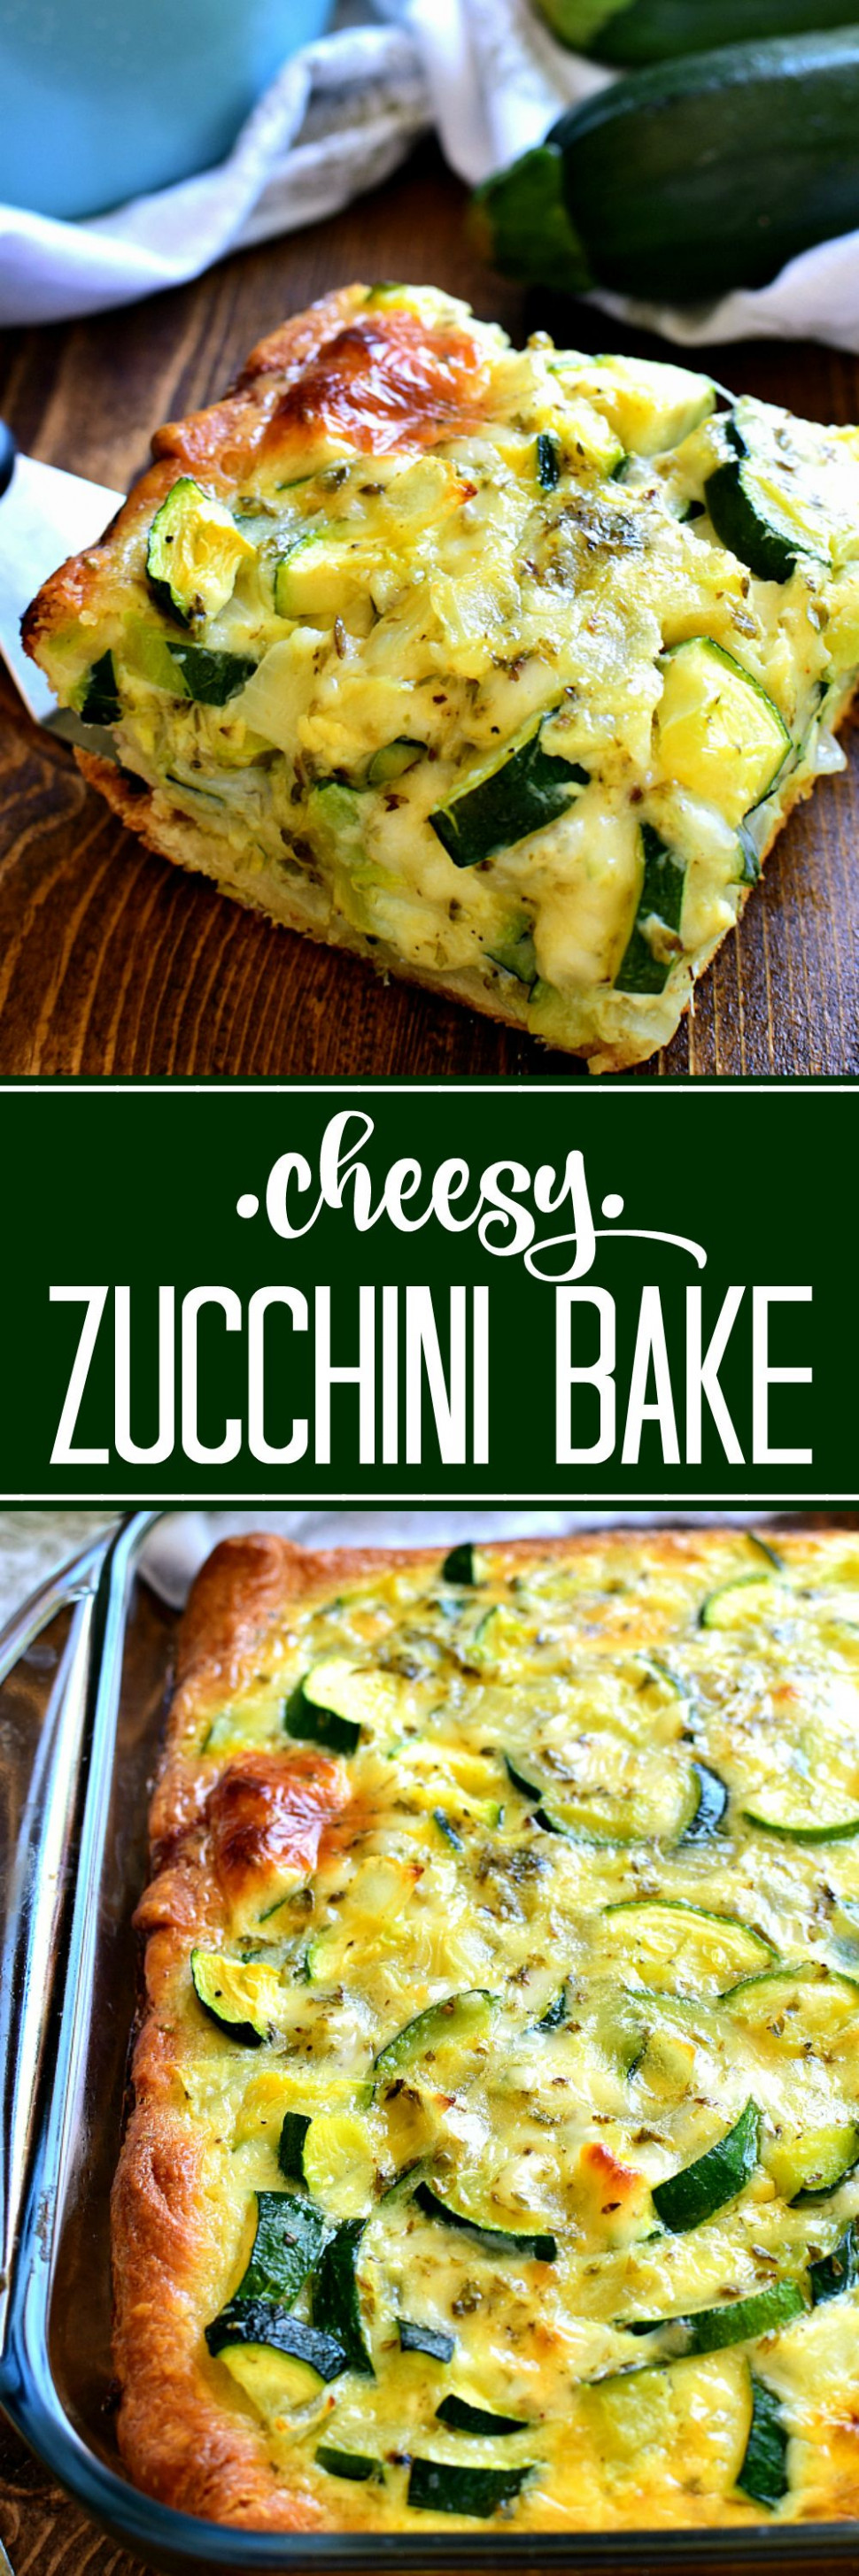 This cheesy Zucchini Bake is one of my favorite ways to use ...